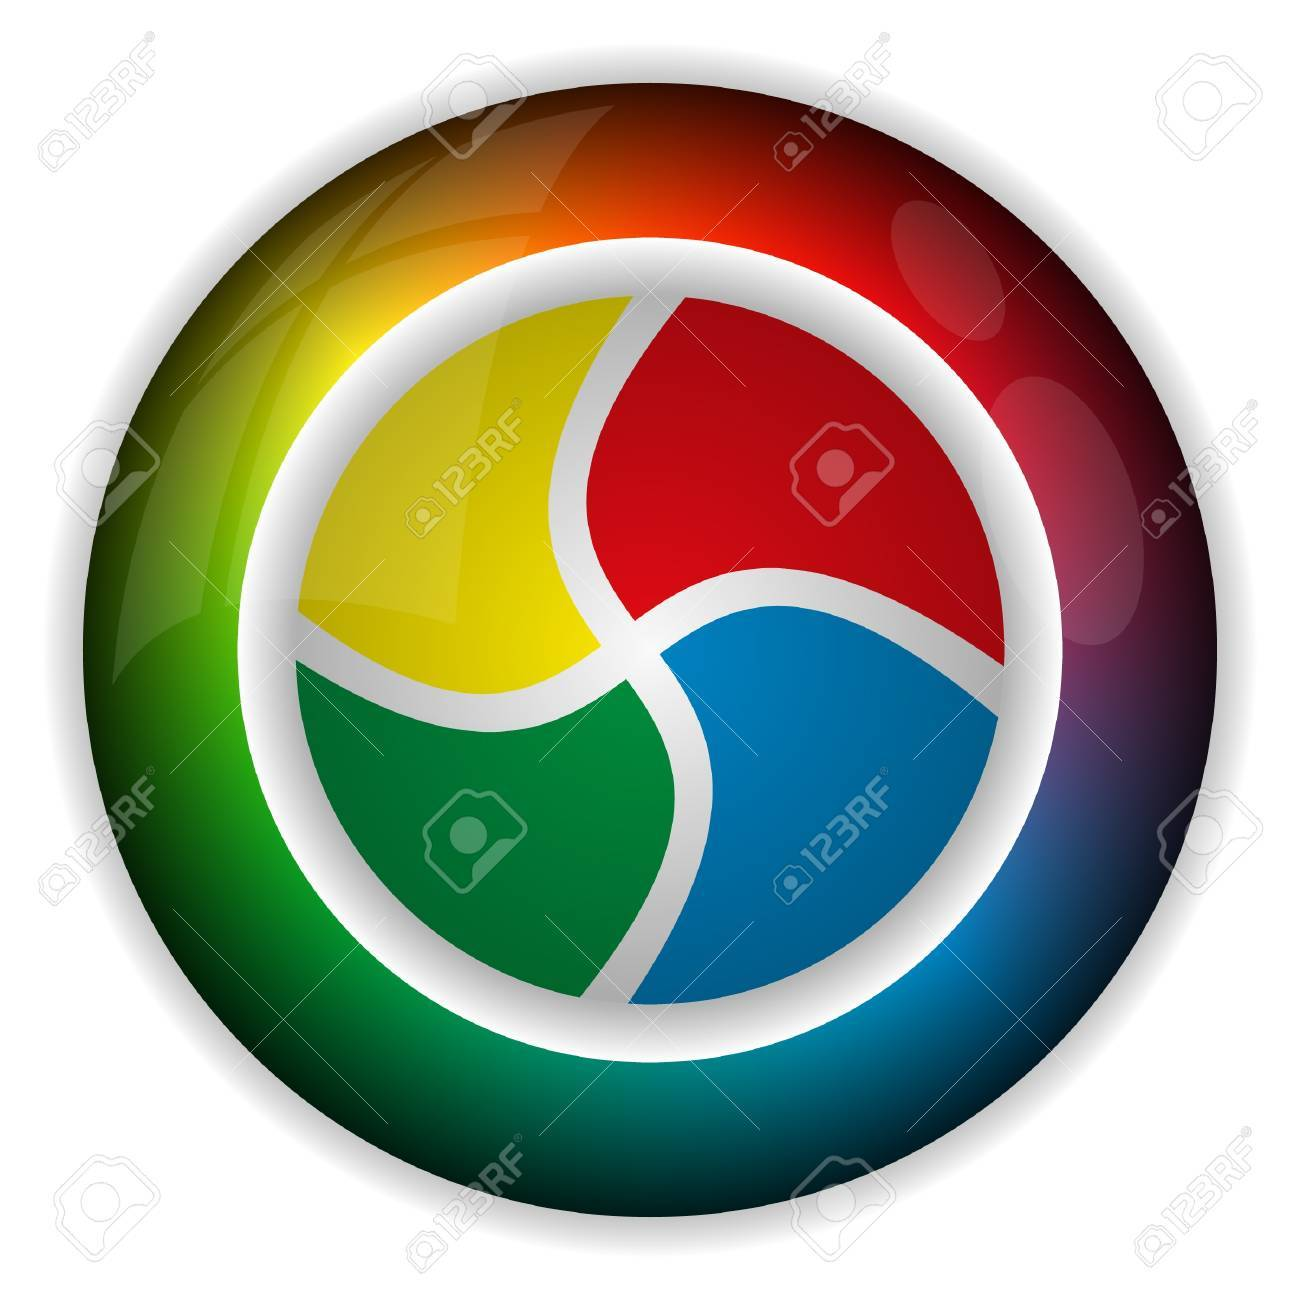 color wheel Stock Photo - 8893385